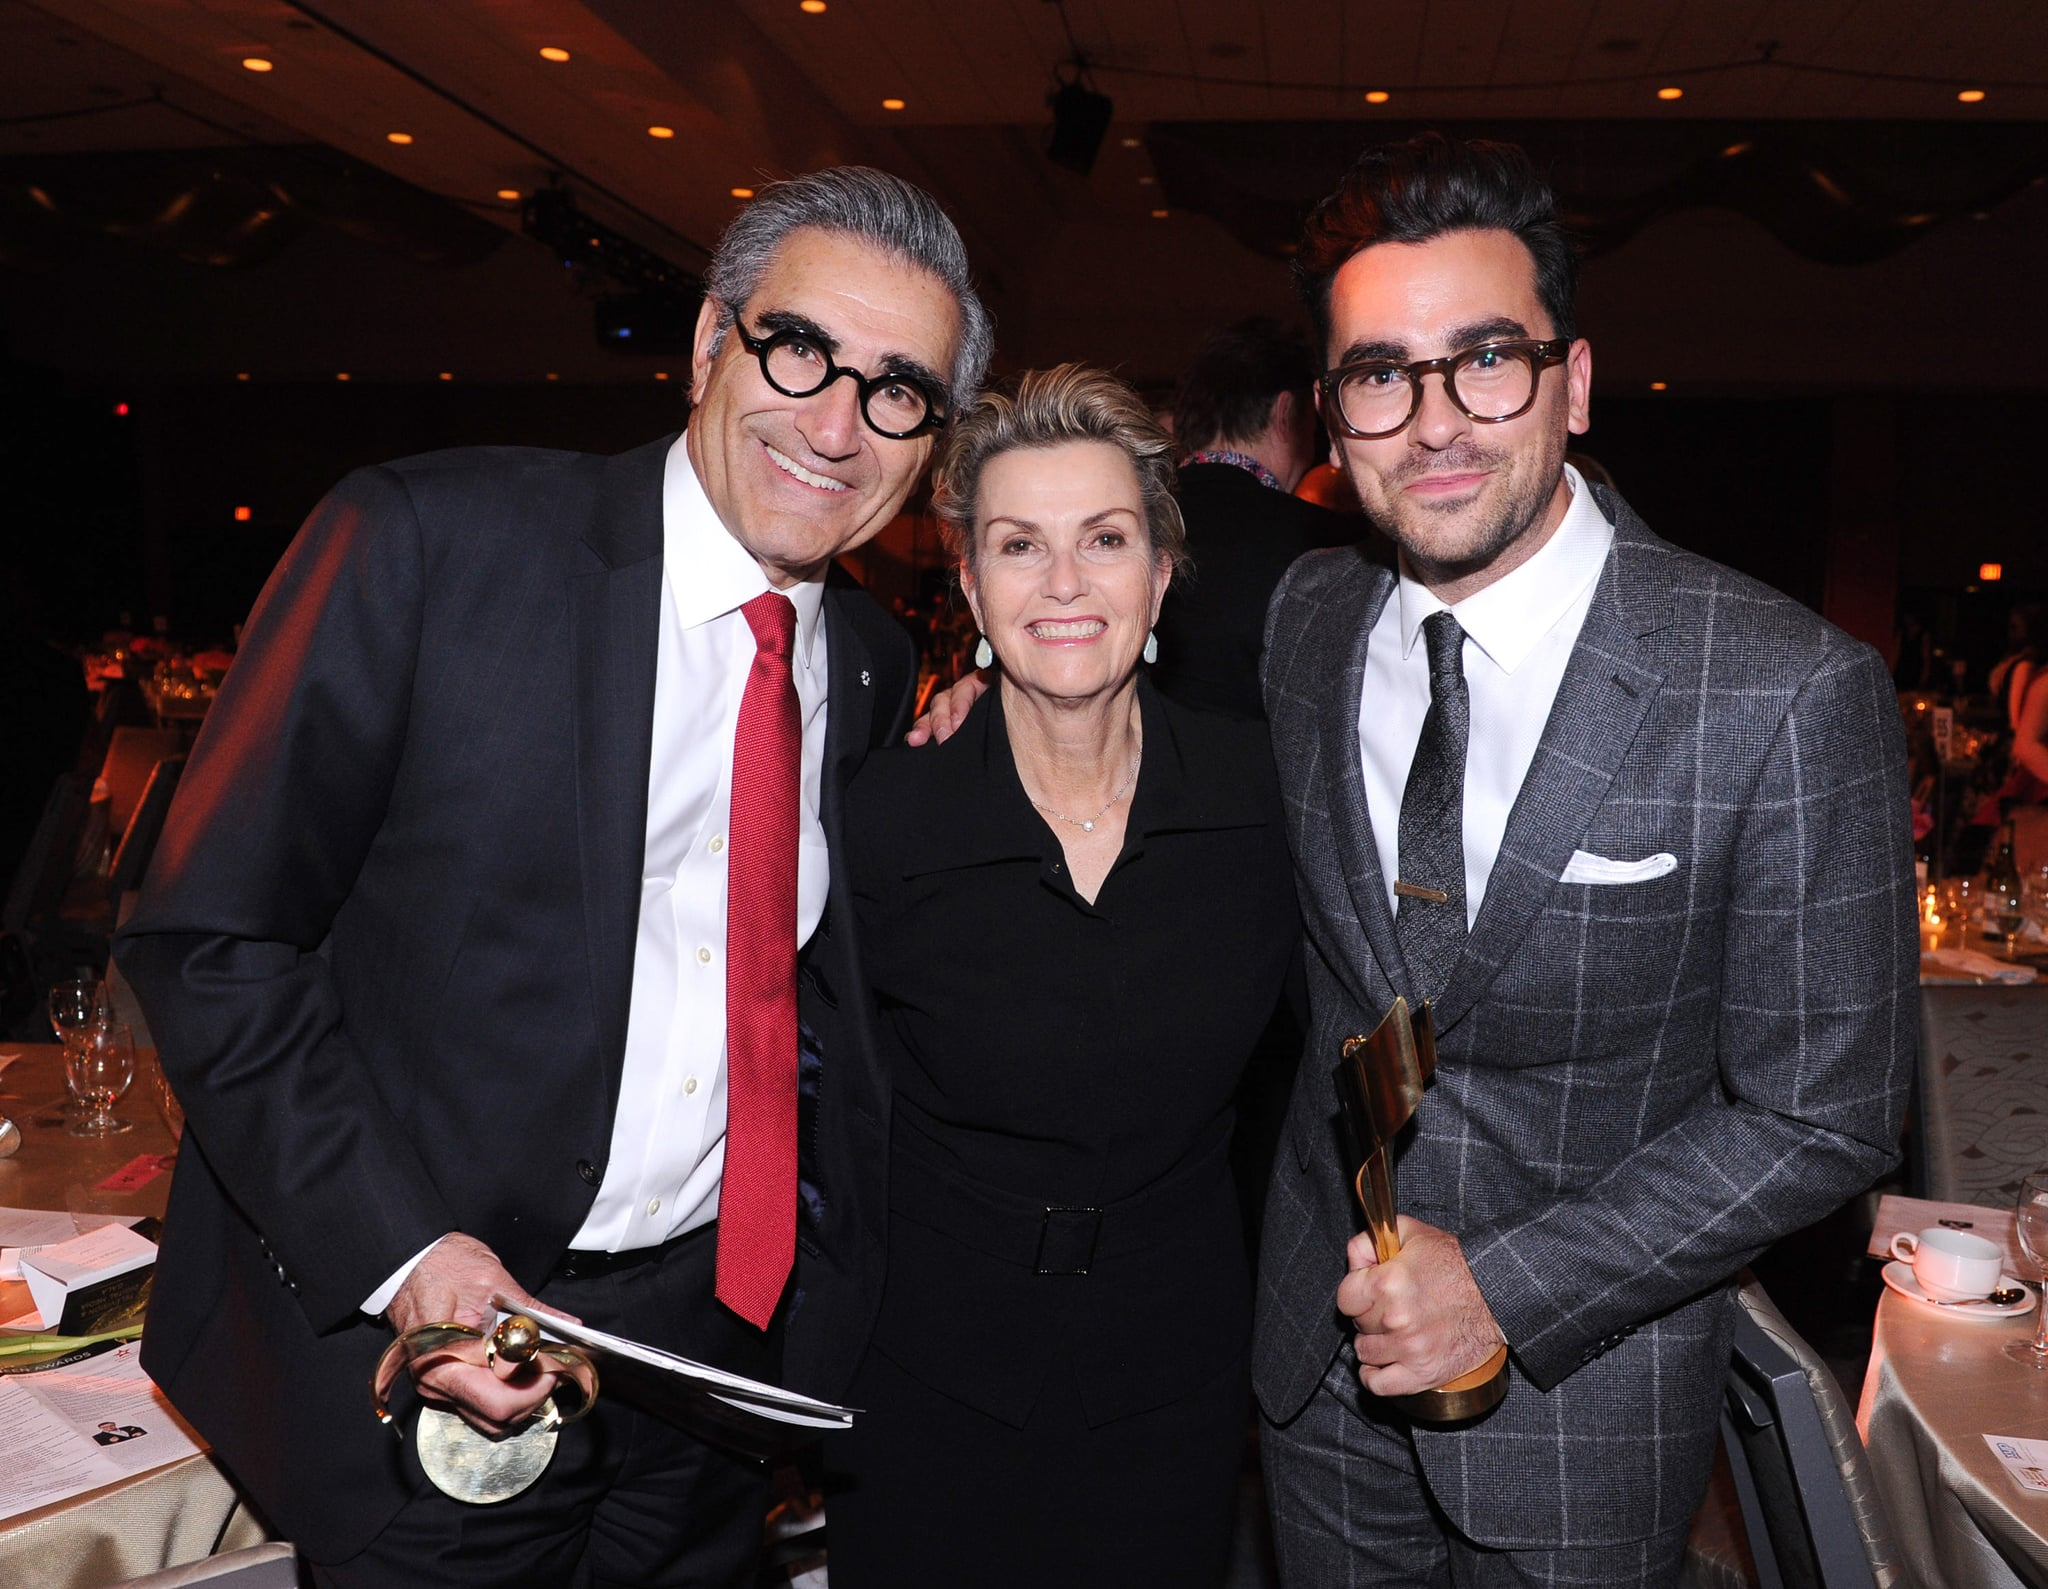 TORONTO, ON - MARCH 09:  (L-R) Actor Eugene Levy, Deborah Divine Levy and actor Daniel Levy attend the Canadian Screen Awards at Westin Harbour Castle Hotel on March 9, 2016 in Toronto, Canada.  (Photo by George Pimentel/Getty Images)